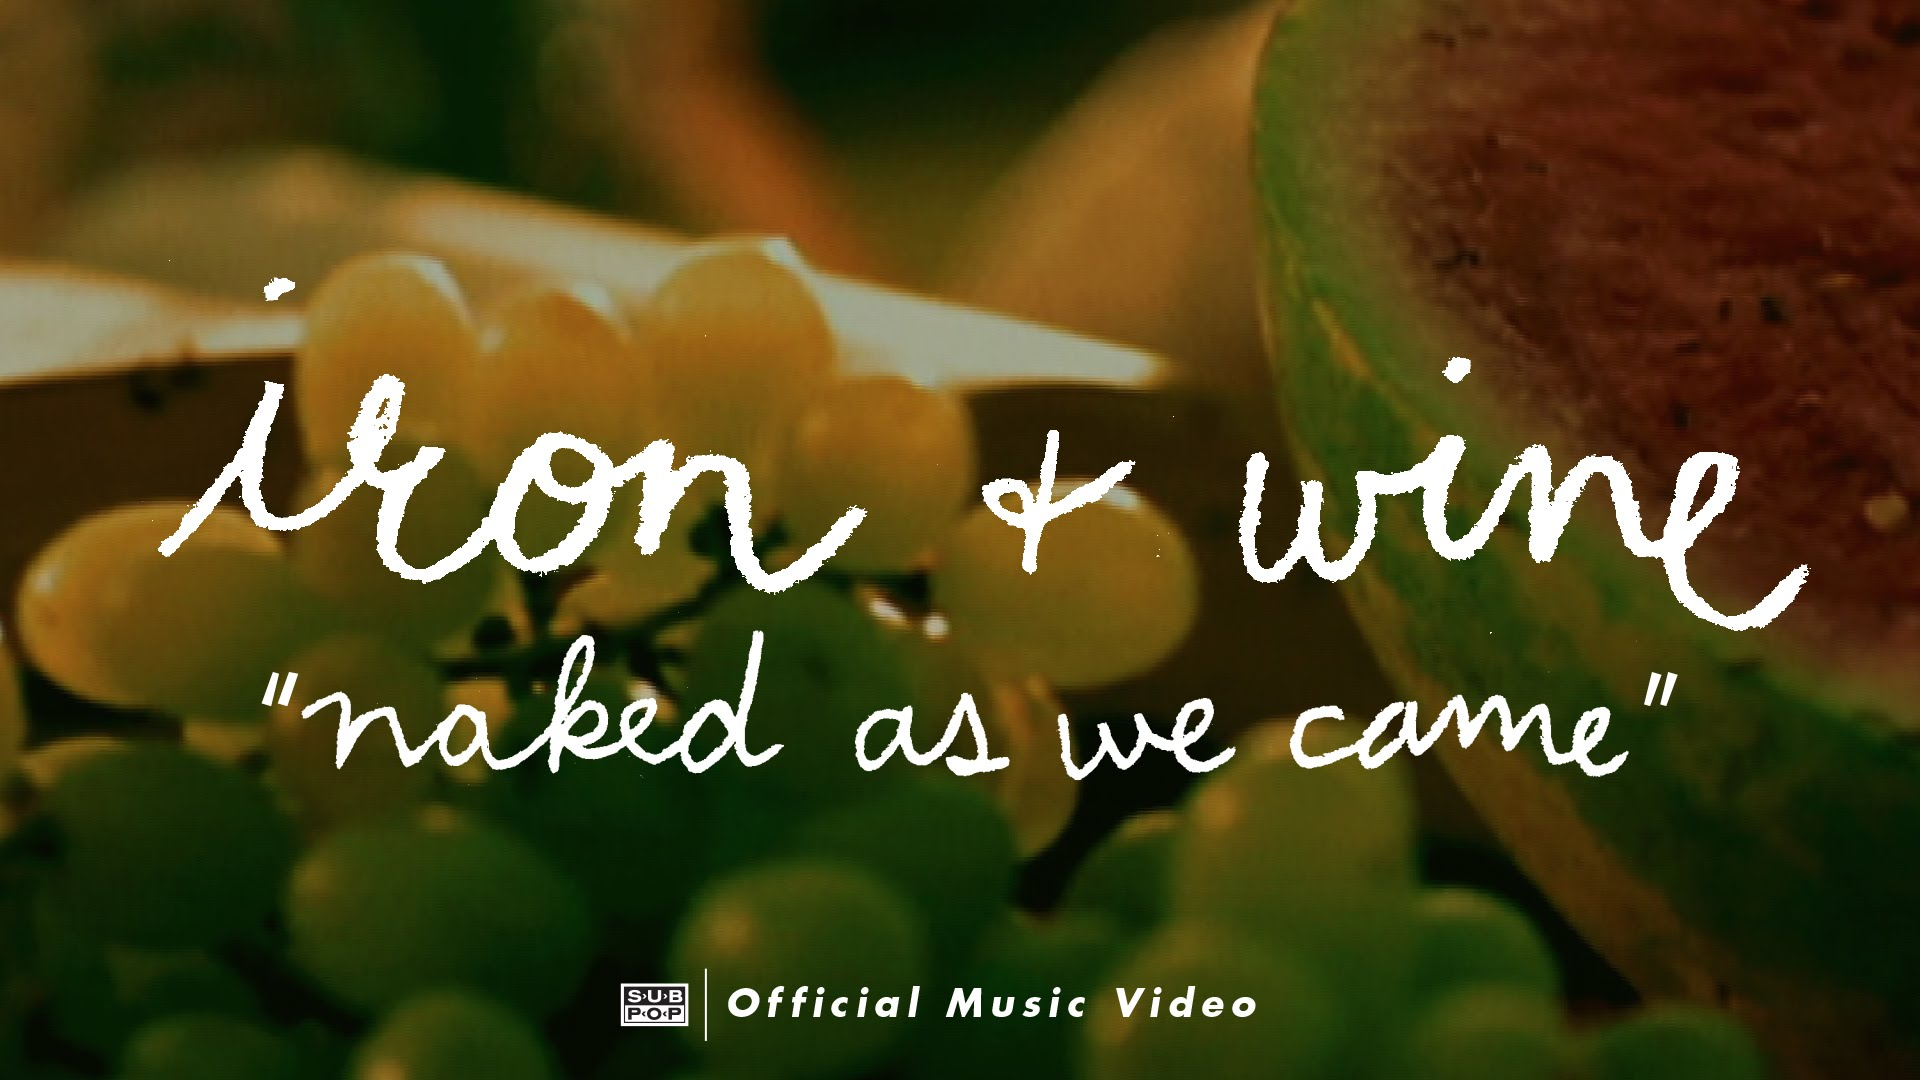 Iron and wine naked as we came photo 718